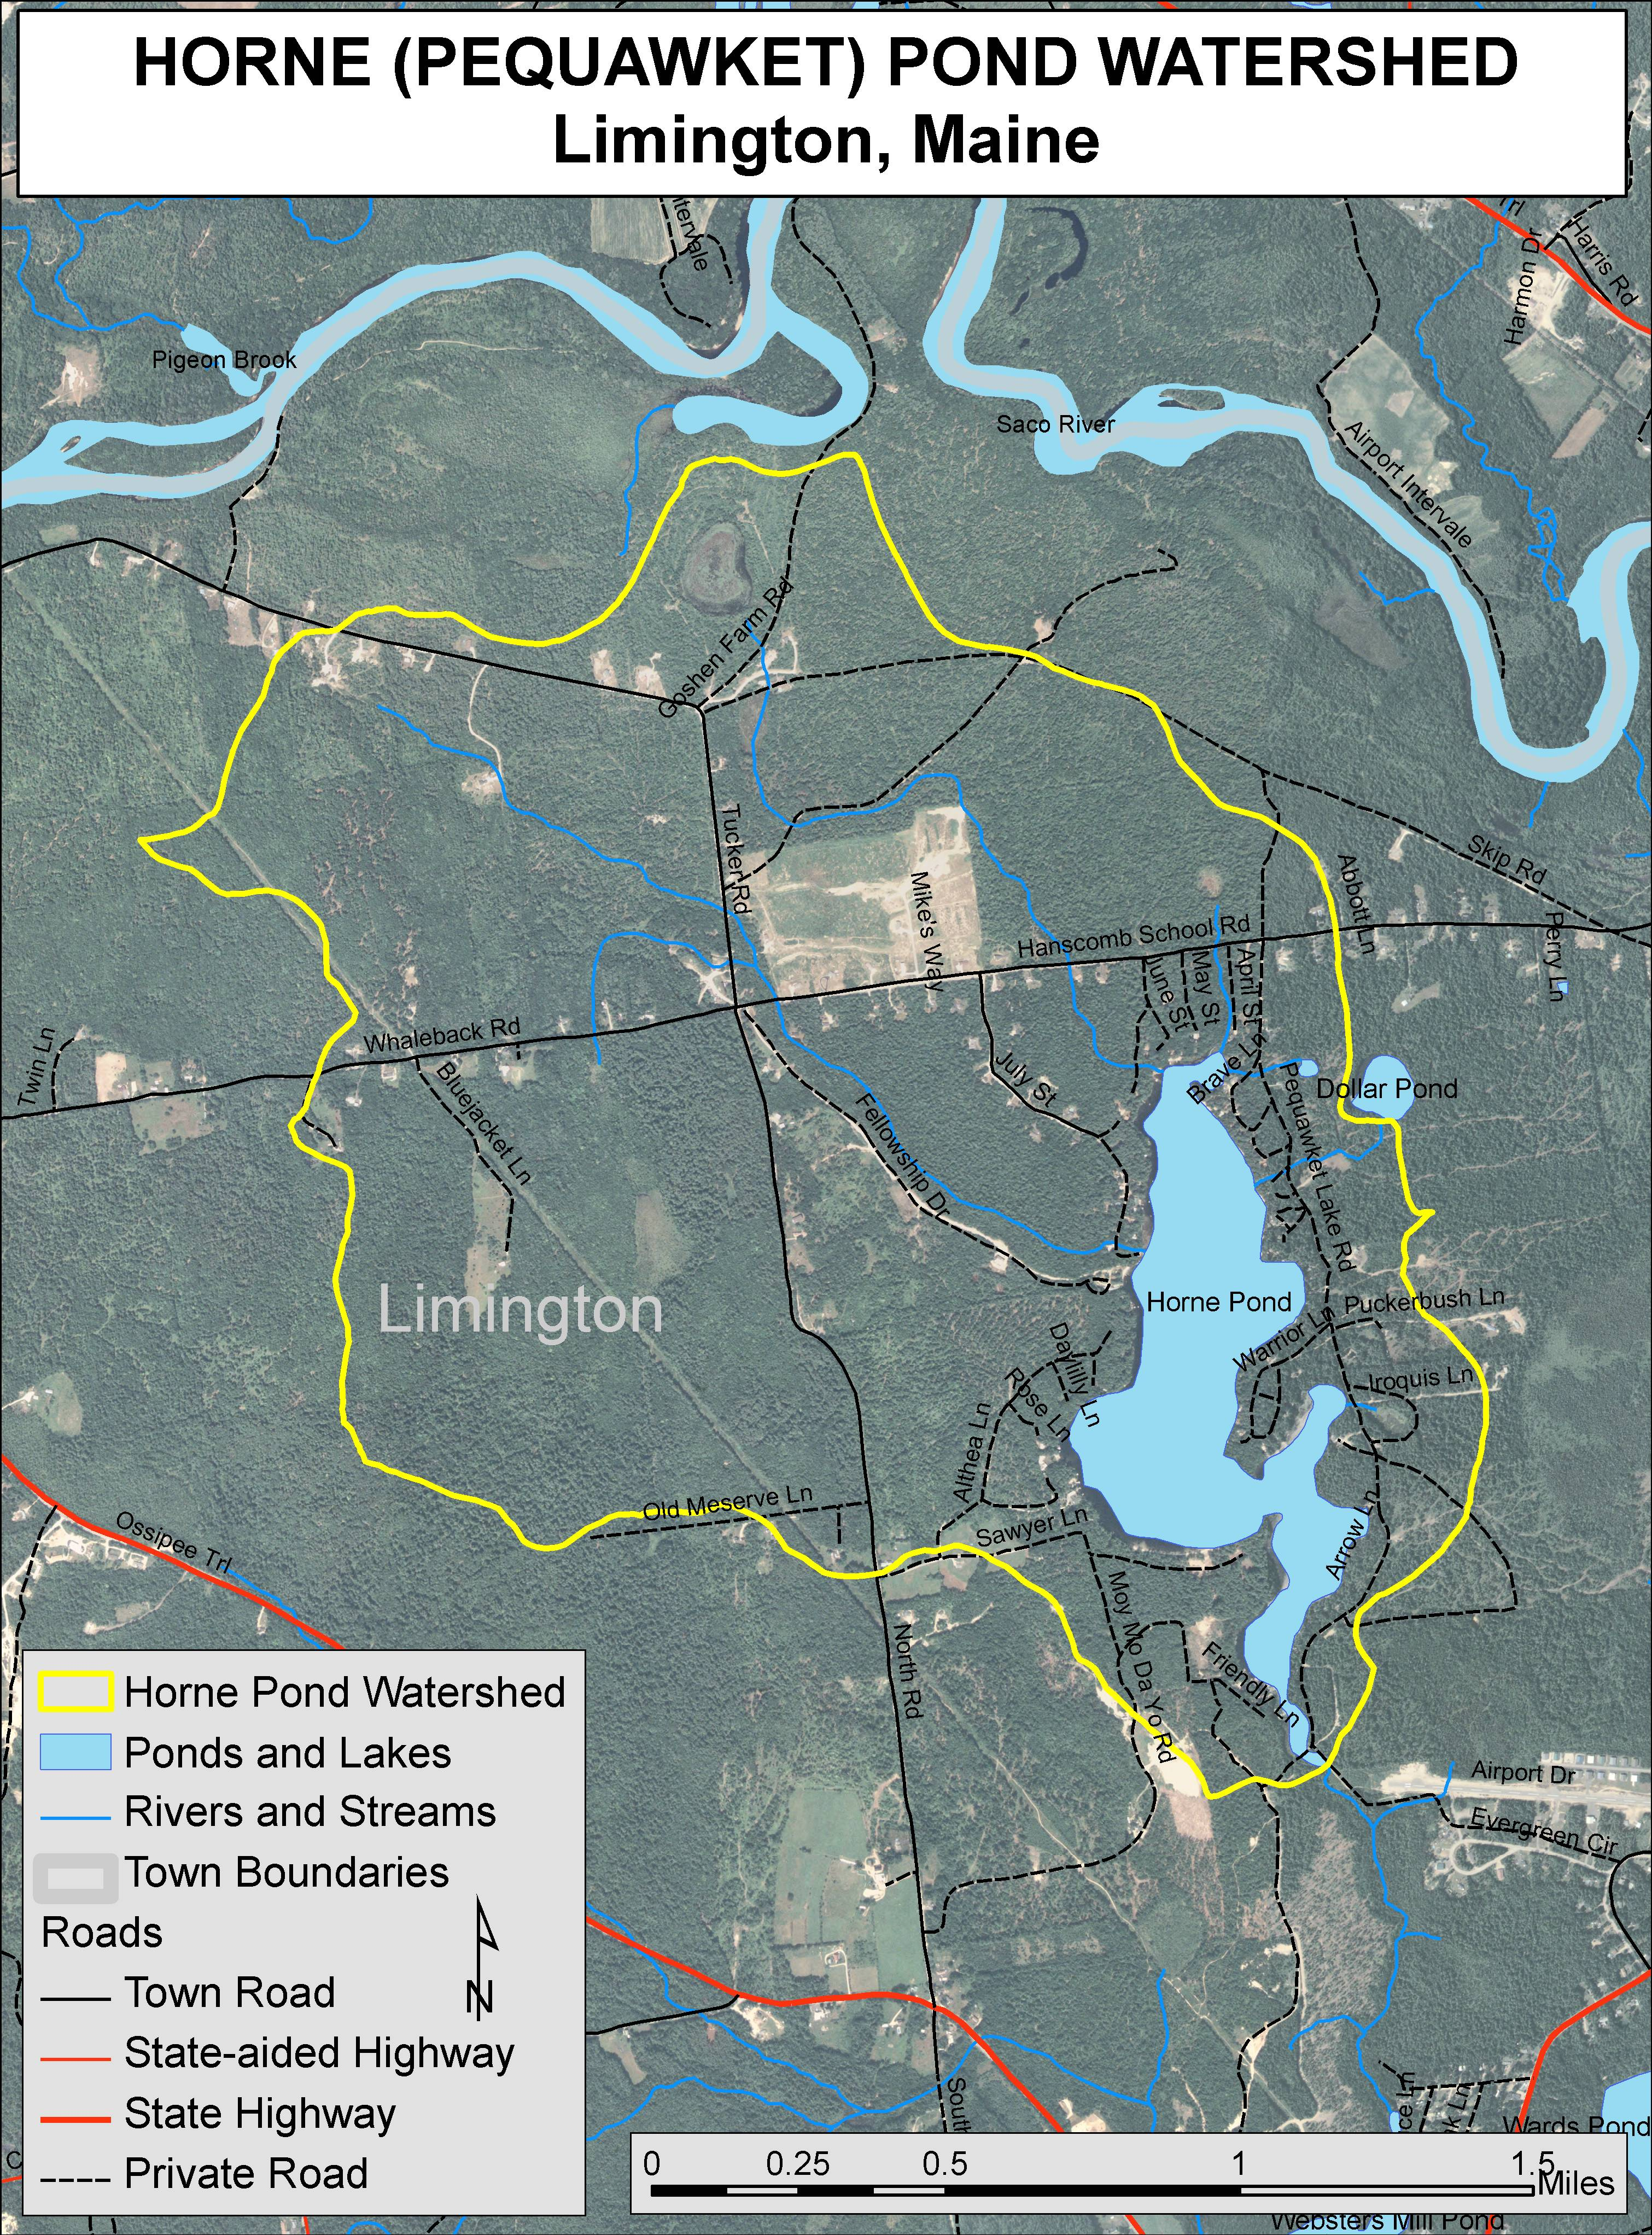 Limington Maine Map.Lakes Of Maine Lake Overview Horne Pond Pequawket Lake